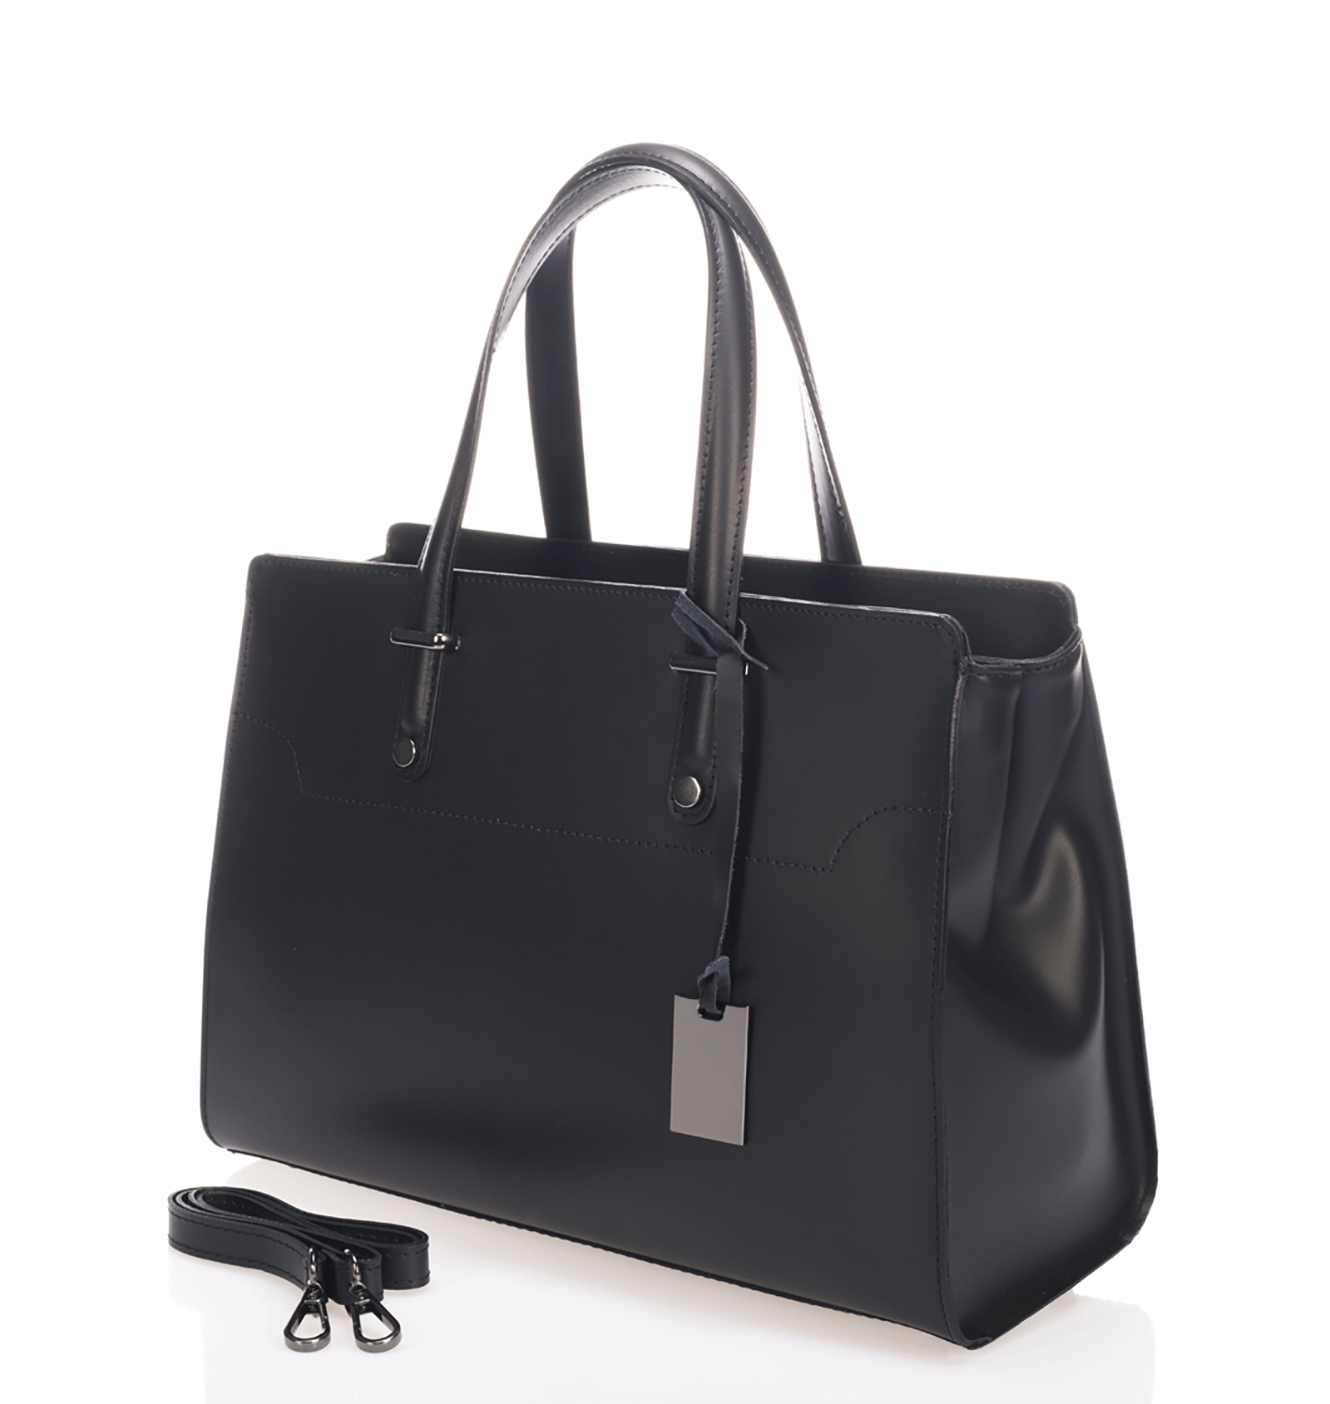 West Street Satchel - Midnight Black - GRACEBURY